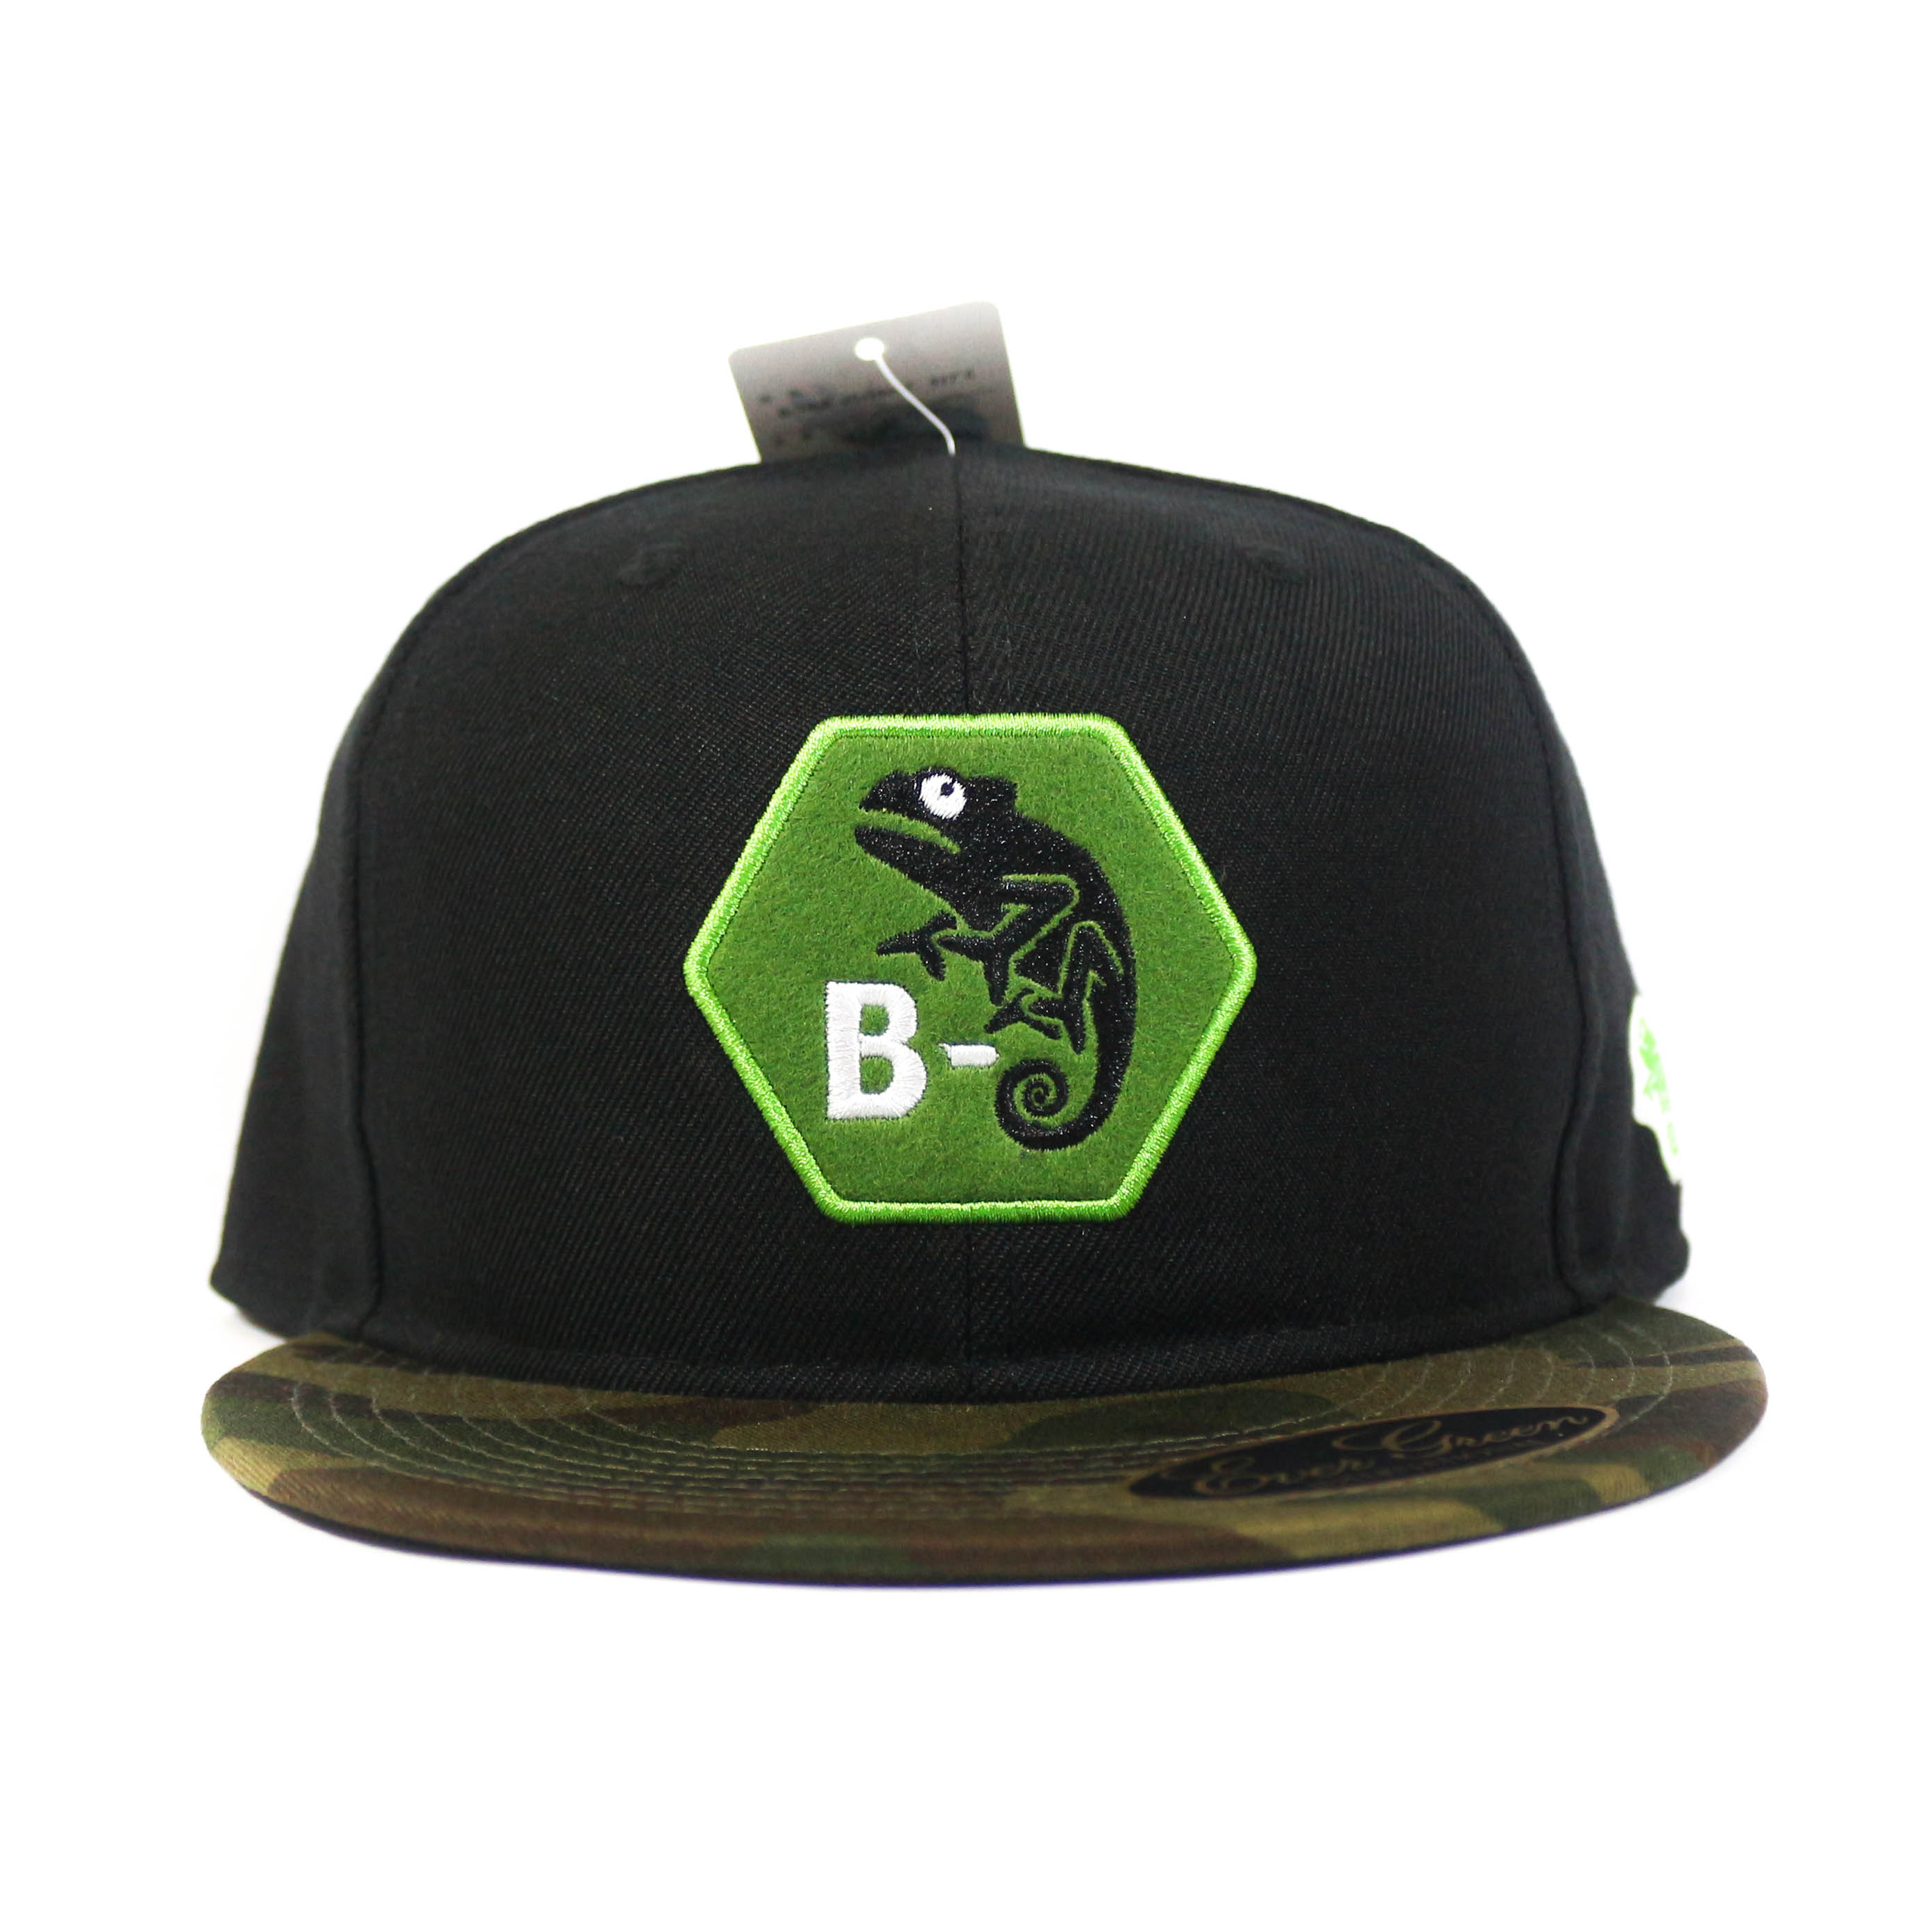 Evergreen Cap Flat Cap B-True Type C Japan Free Size Green Camo x Black (6369)